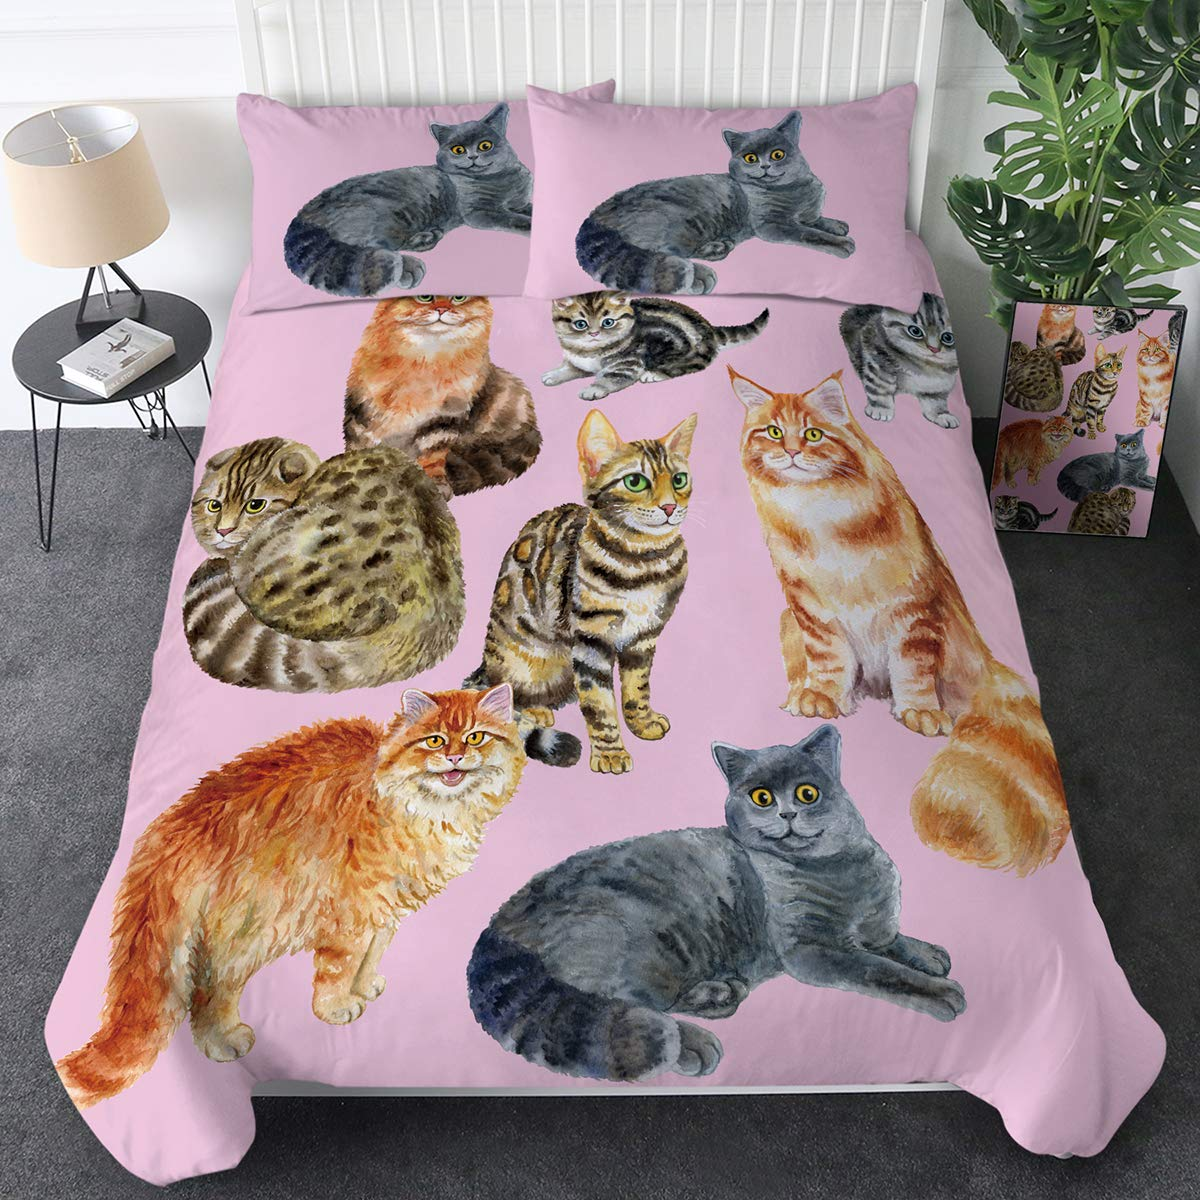 Sleepwish Cat Bedding Sets for Kids Boys Girls Animal Print Bedspreads 3 Piece Bed Set 1 Comforter Duvet Cover 2 Pillowcase(Whimsical Watercolor Cat Pink,Twin)